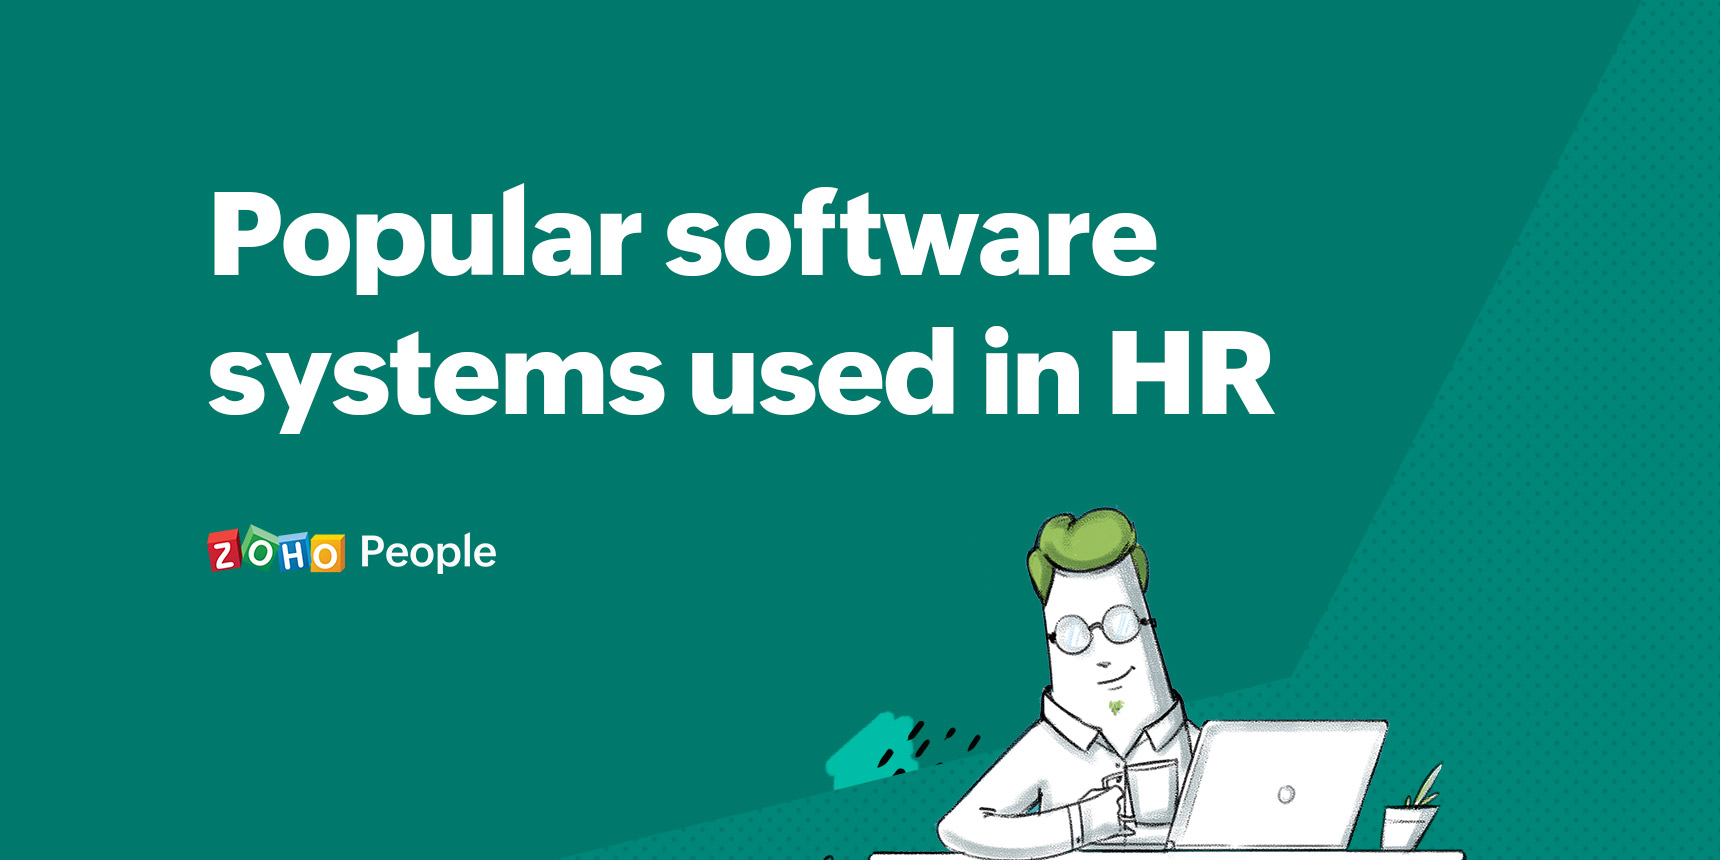 What software do HR professionals use?